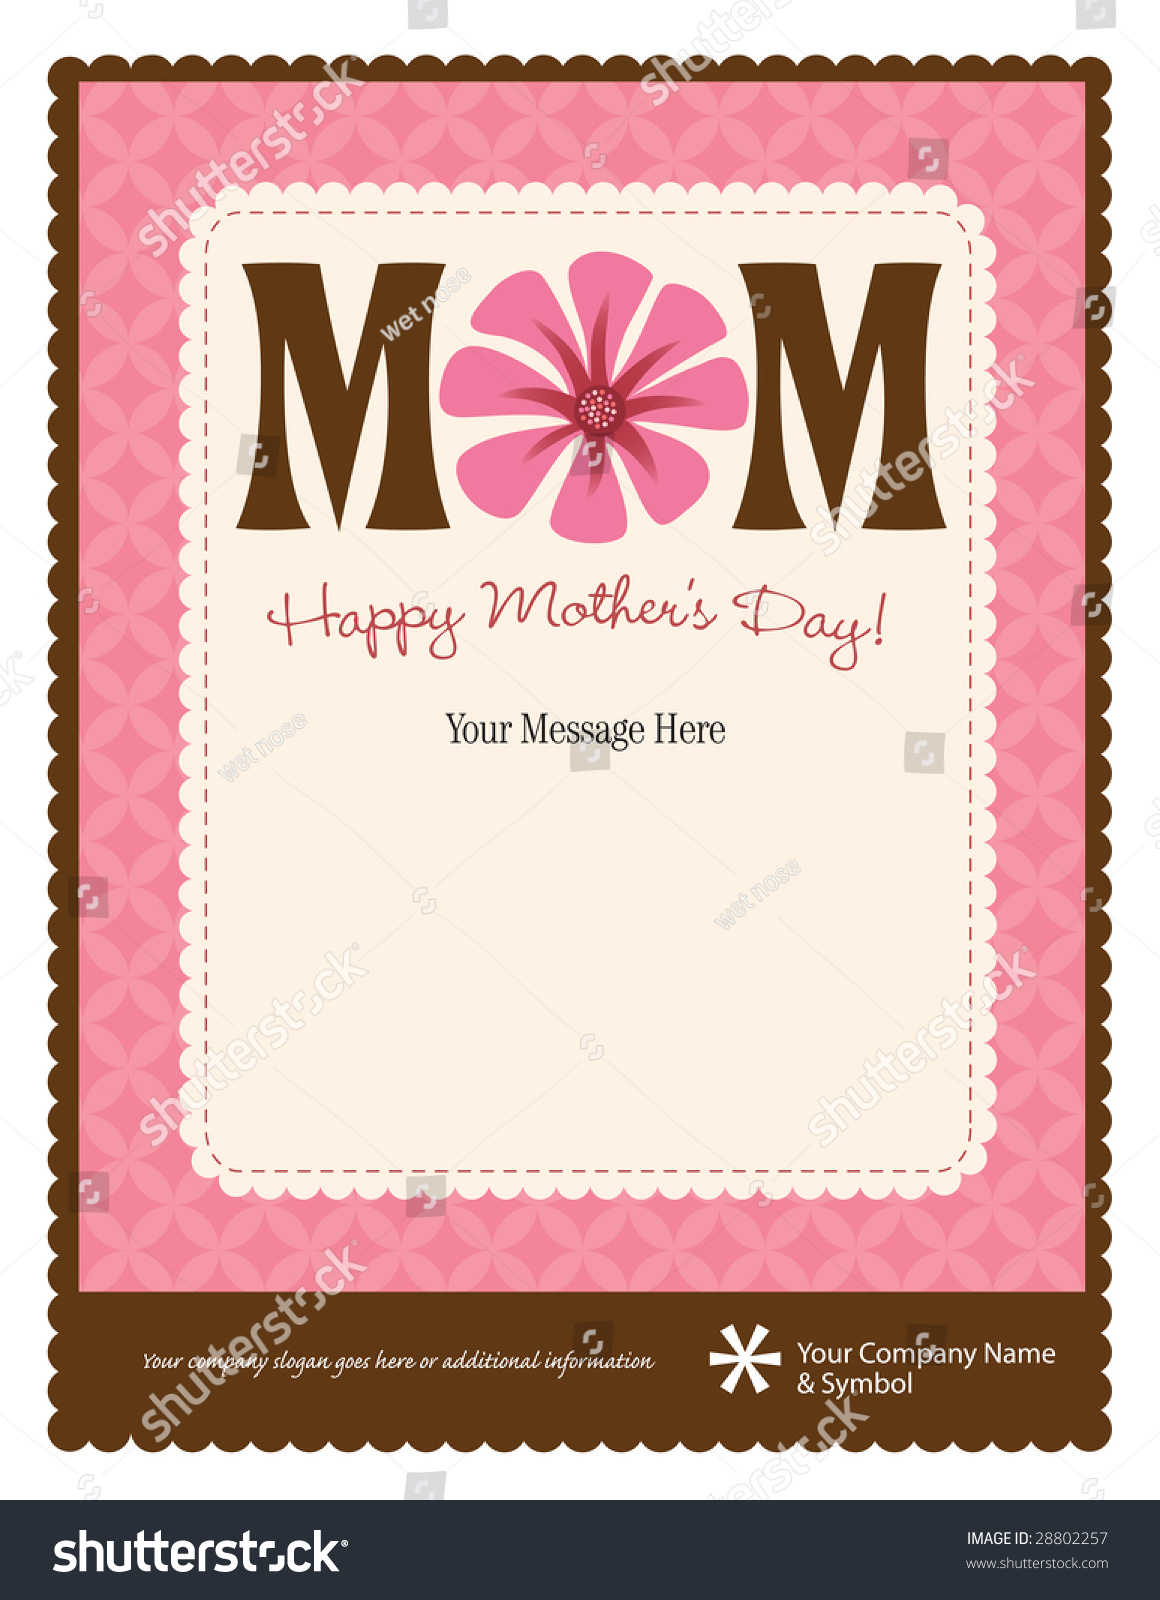 85x11 Happy Mothers Day Flyerposter Template Vector 28802257 – Mothers Day Flyer